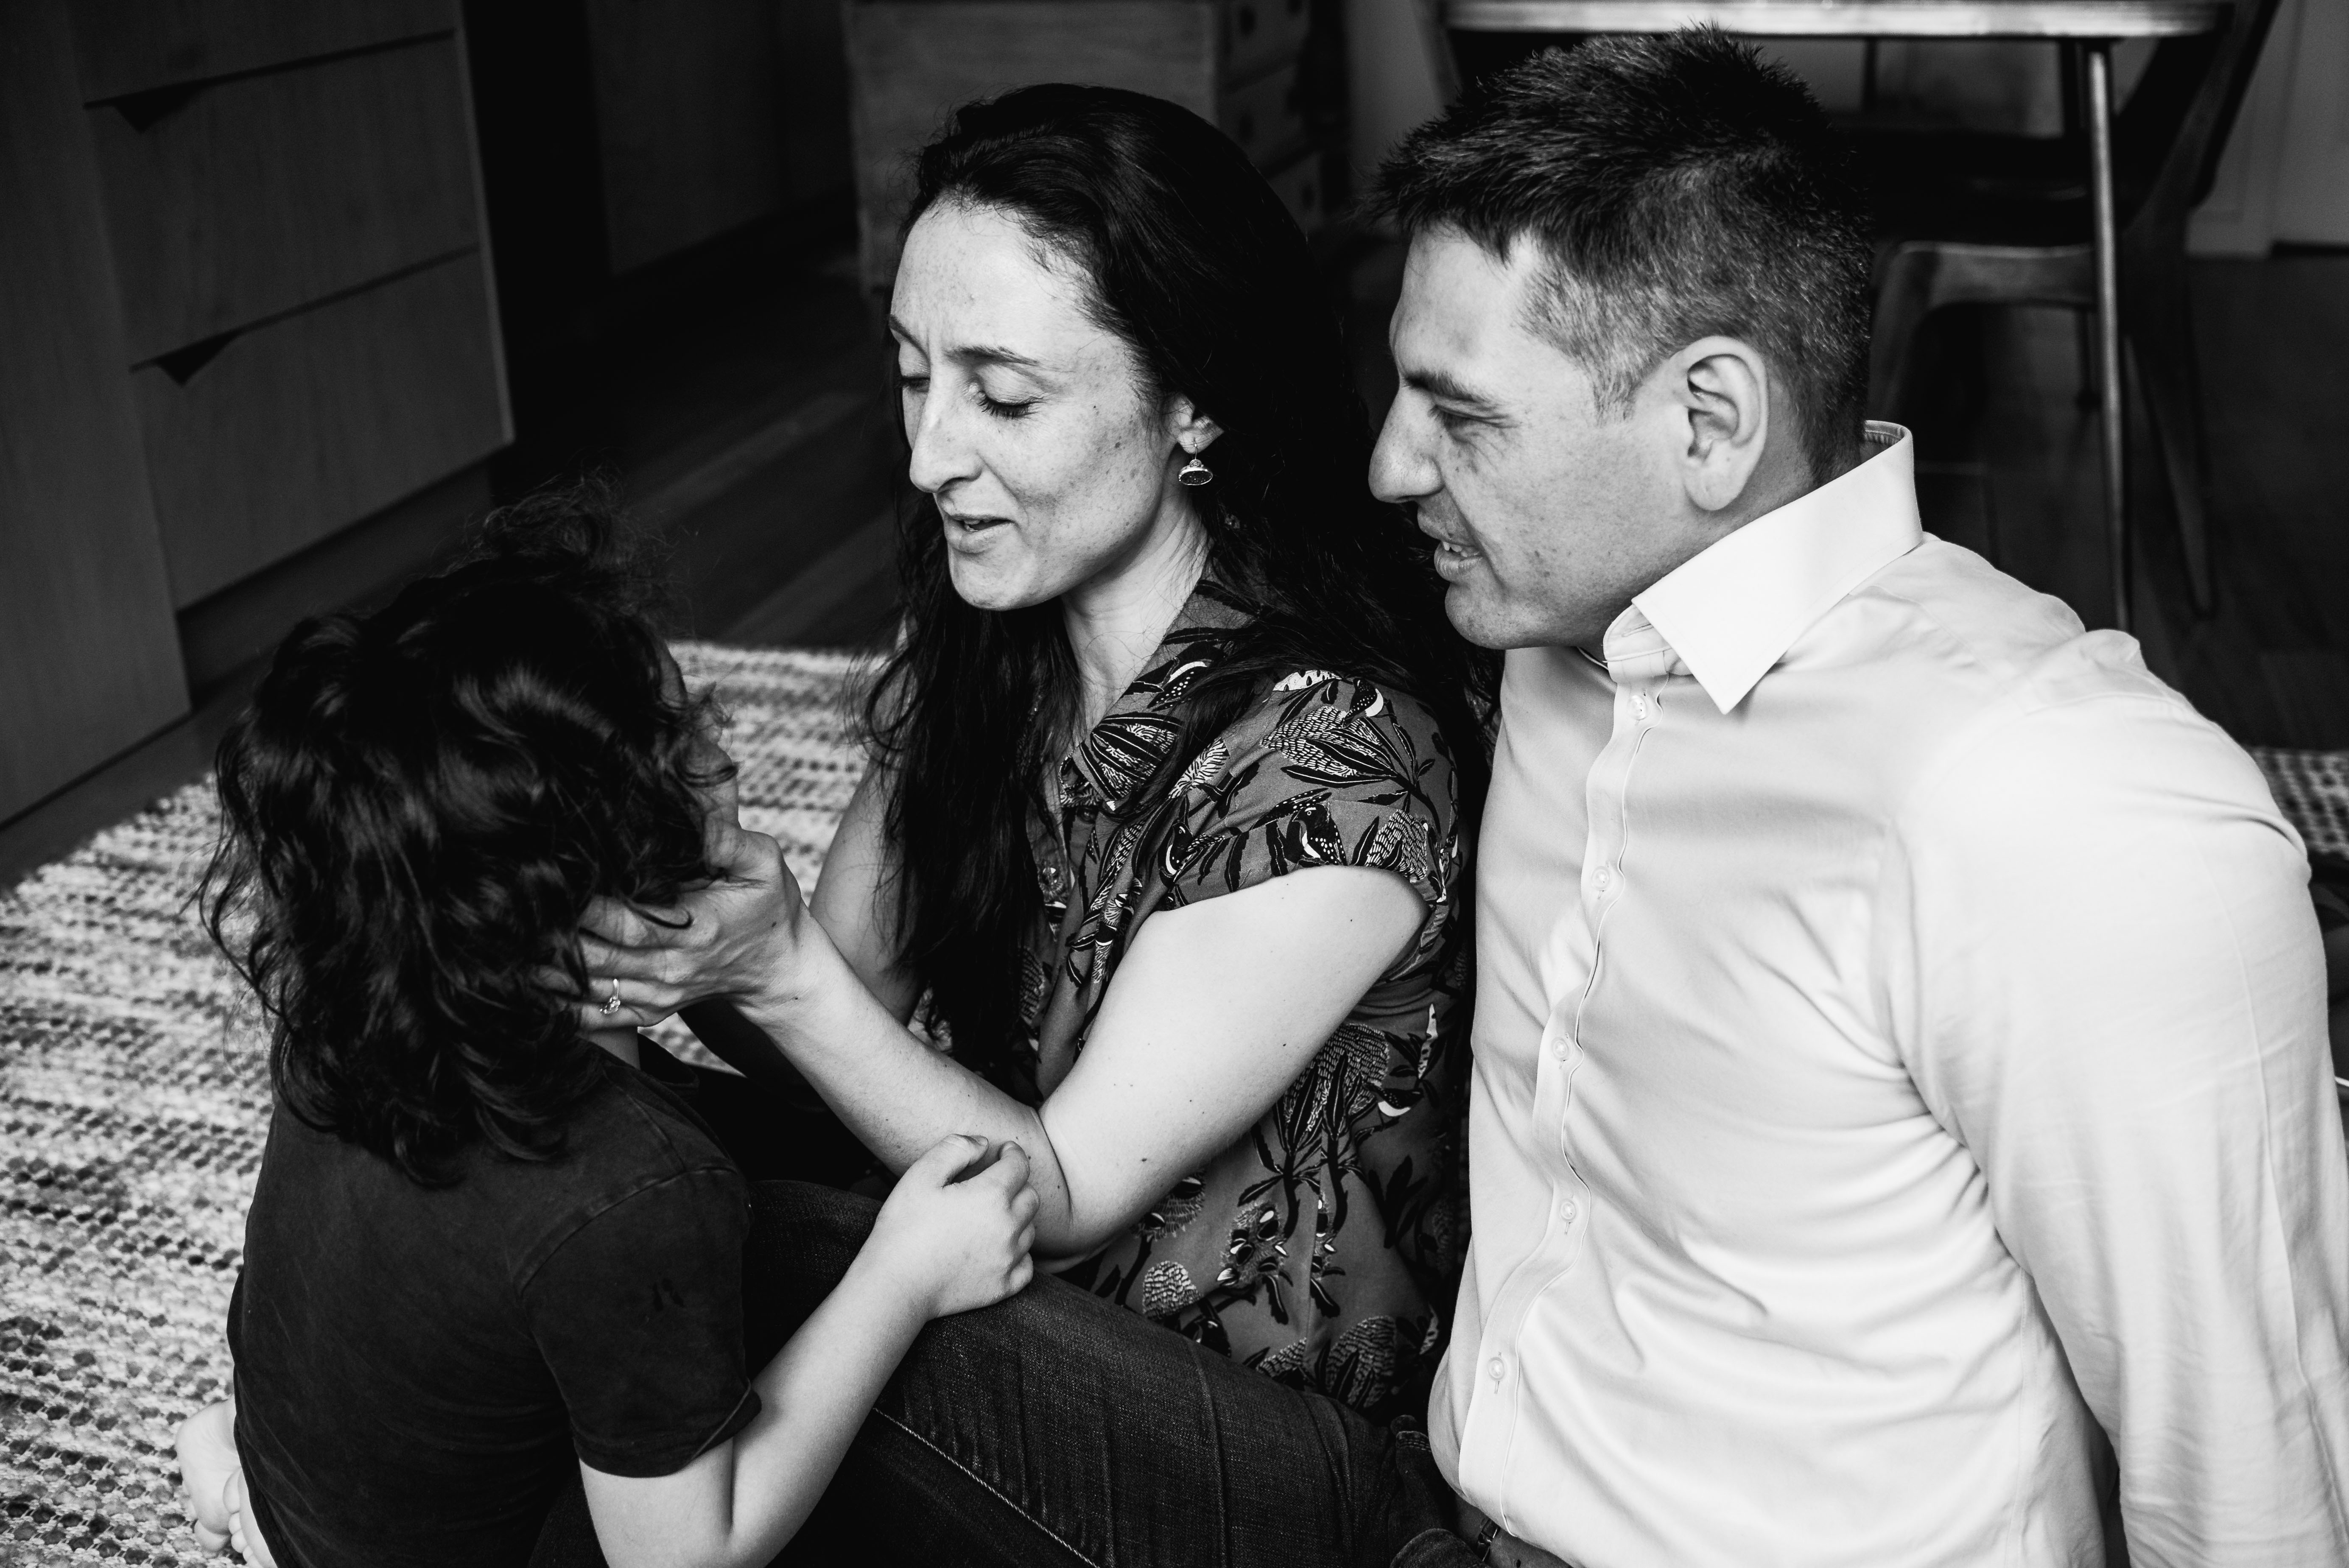 in-home session photograph of parents talking to their son in Carlton North, Melbourne, Australia